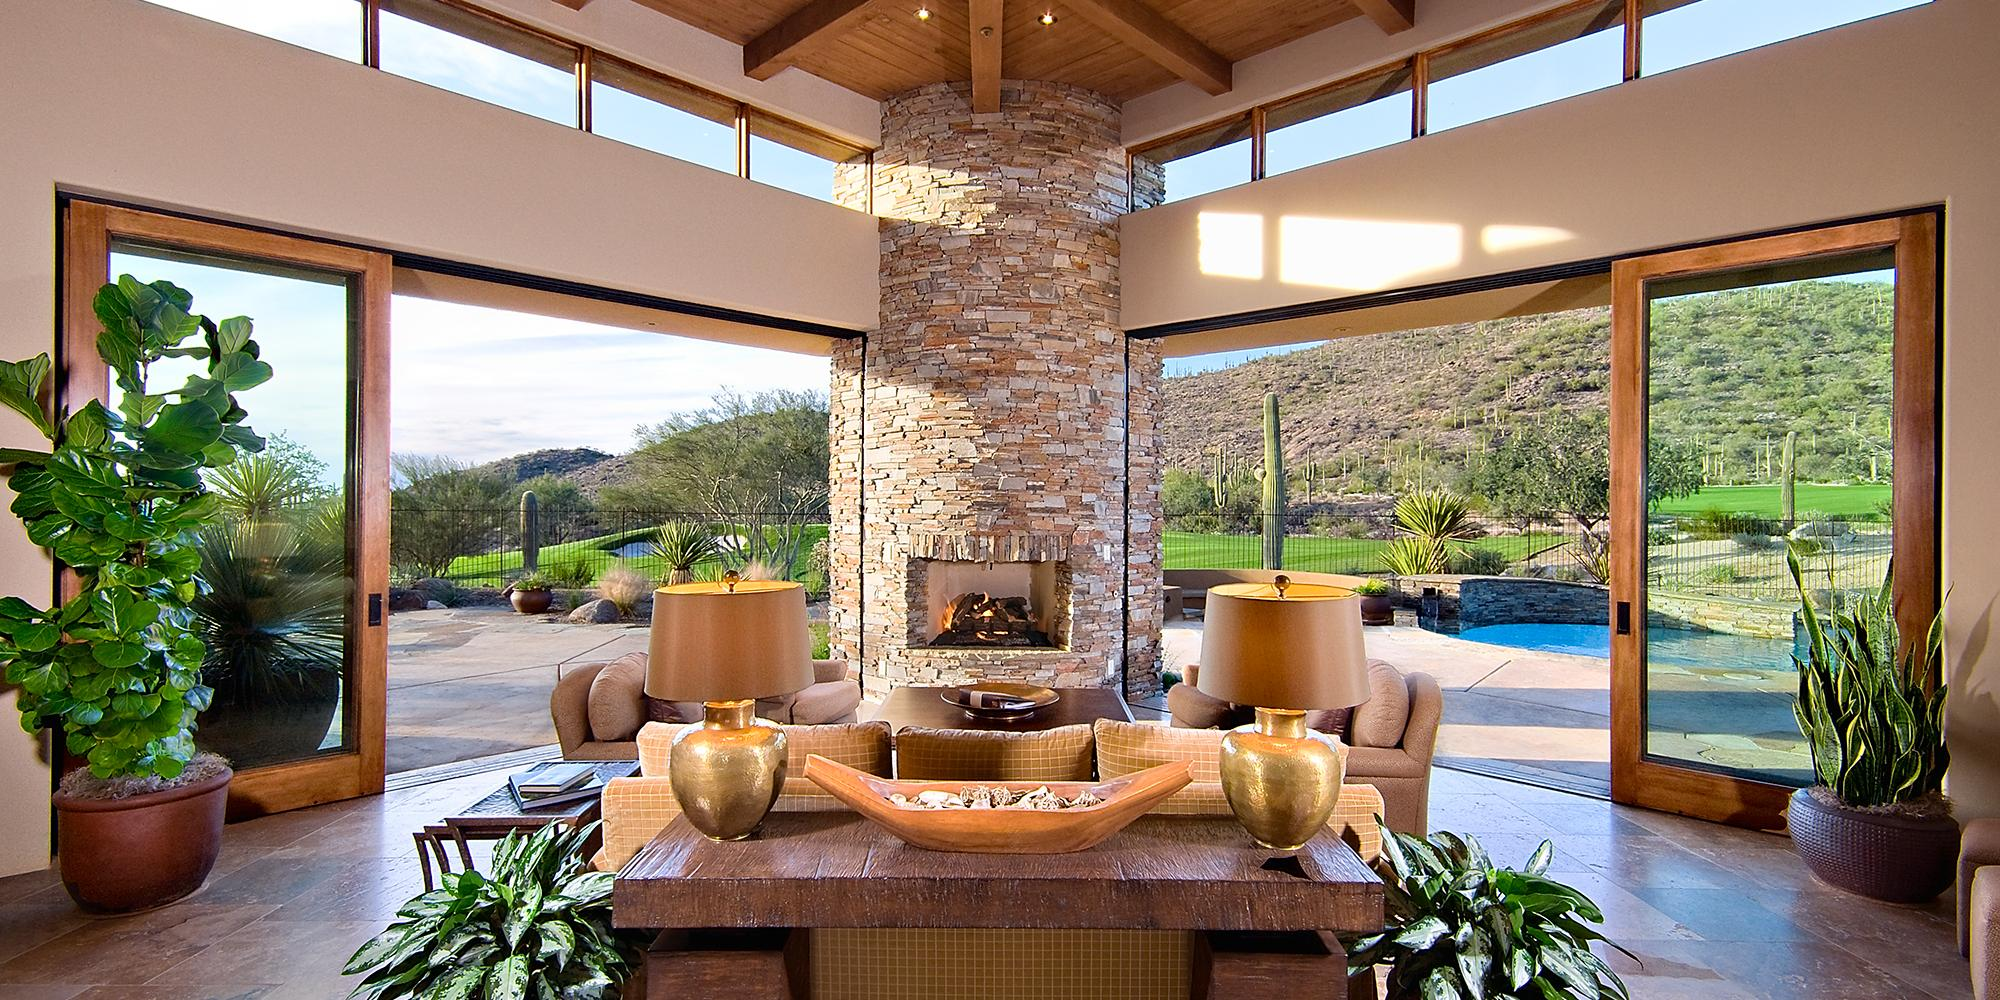 The Ritz-Carlton Residences, Dove Mountain